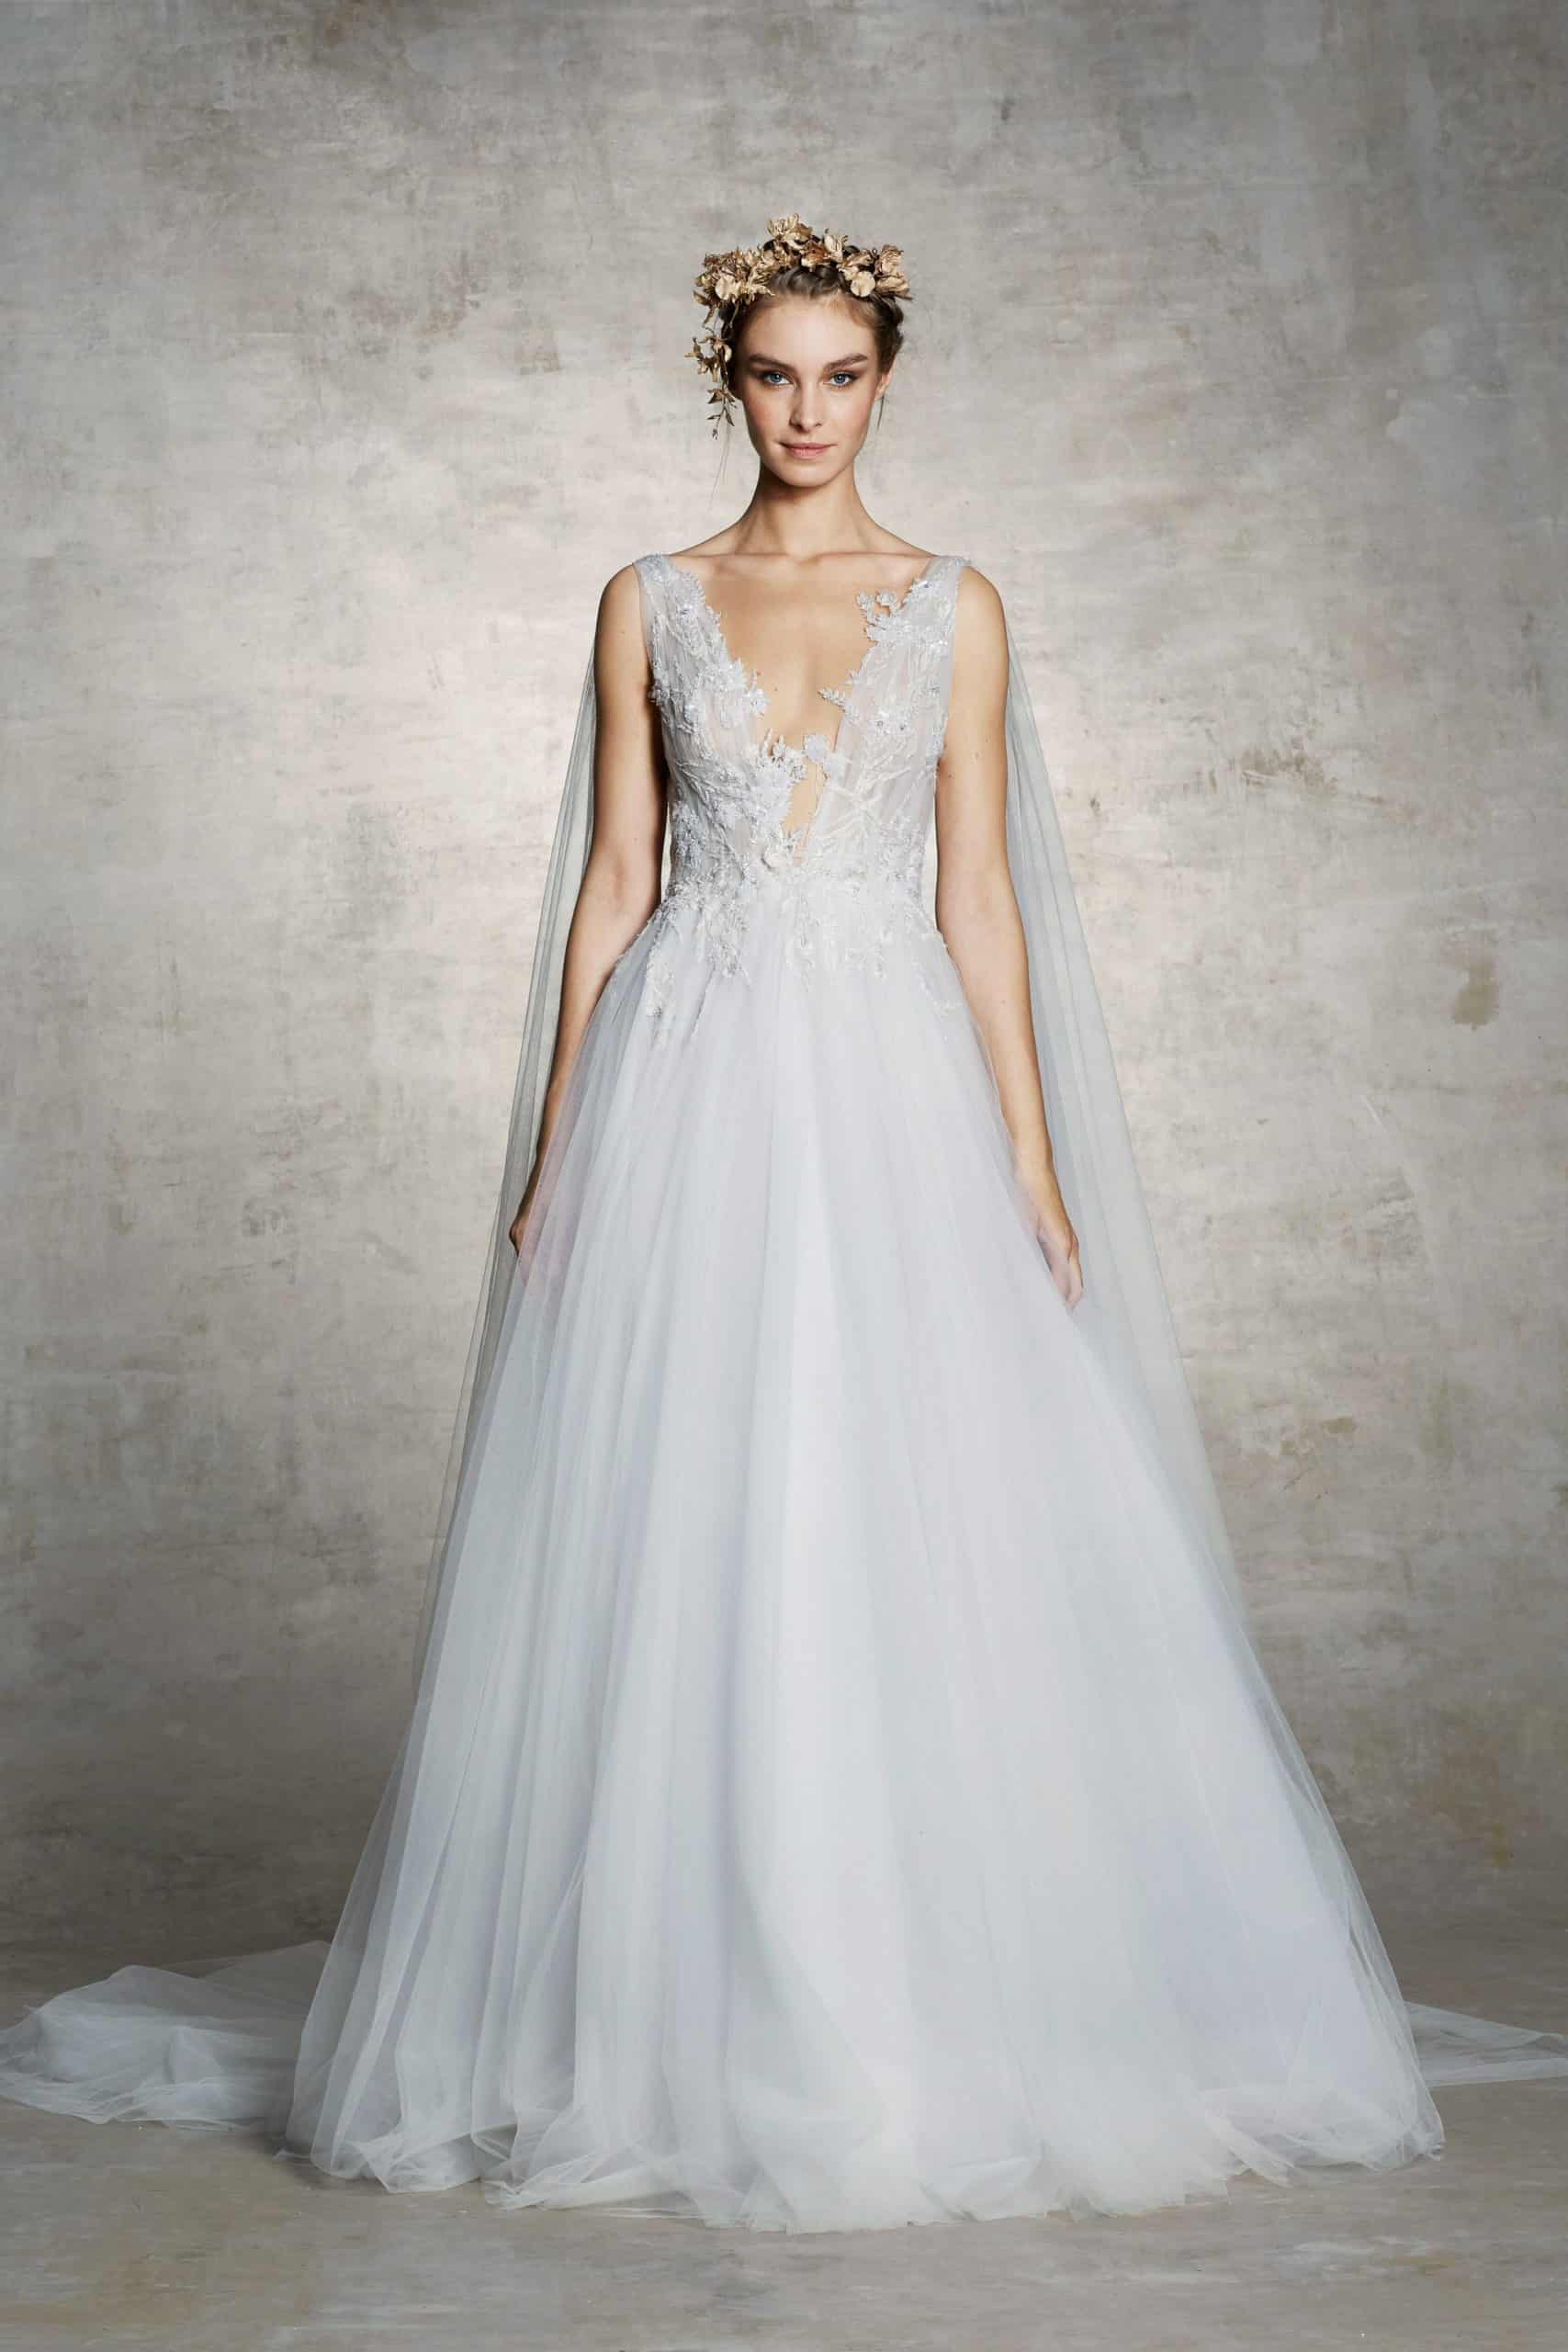 wedding dress with a tulle cape by Marchesa